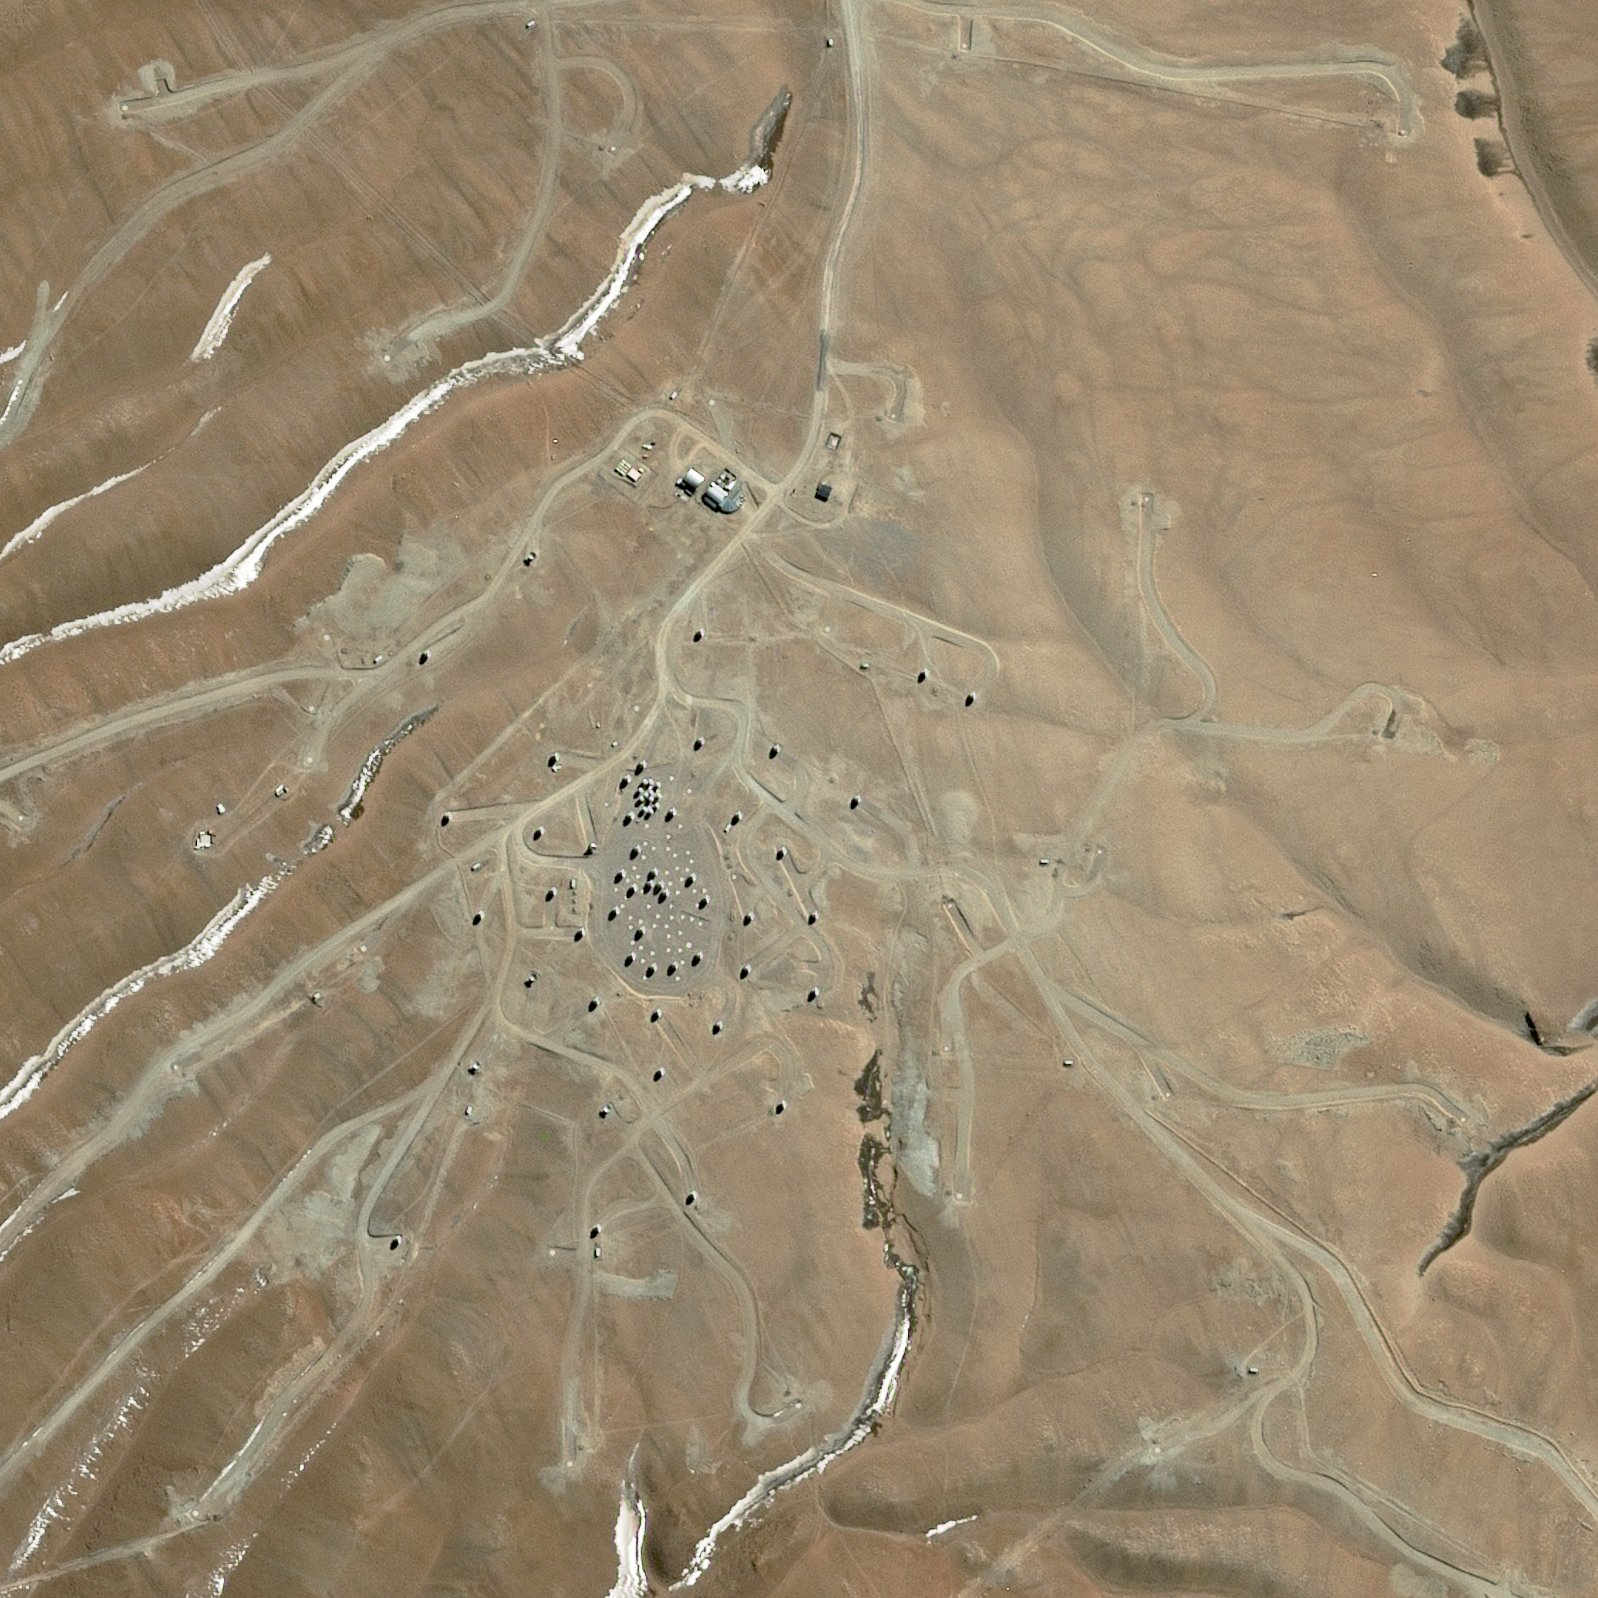 ALMA - ESO - Chili - Satellite SPOT 6 - Août 2014 - Atacama - réseau antennes - Atacama Large Millimeter Array - Airbus Defence and Space